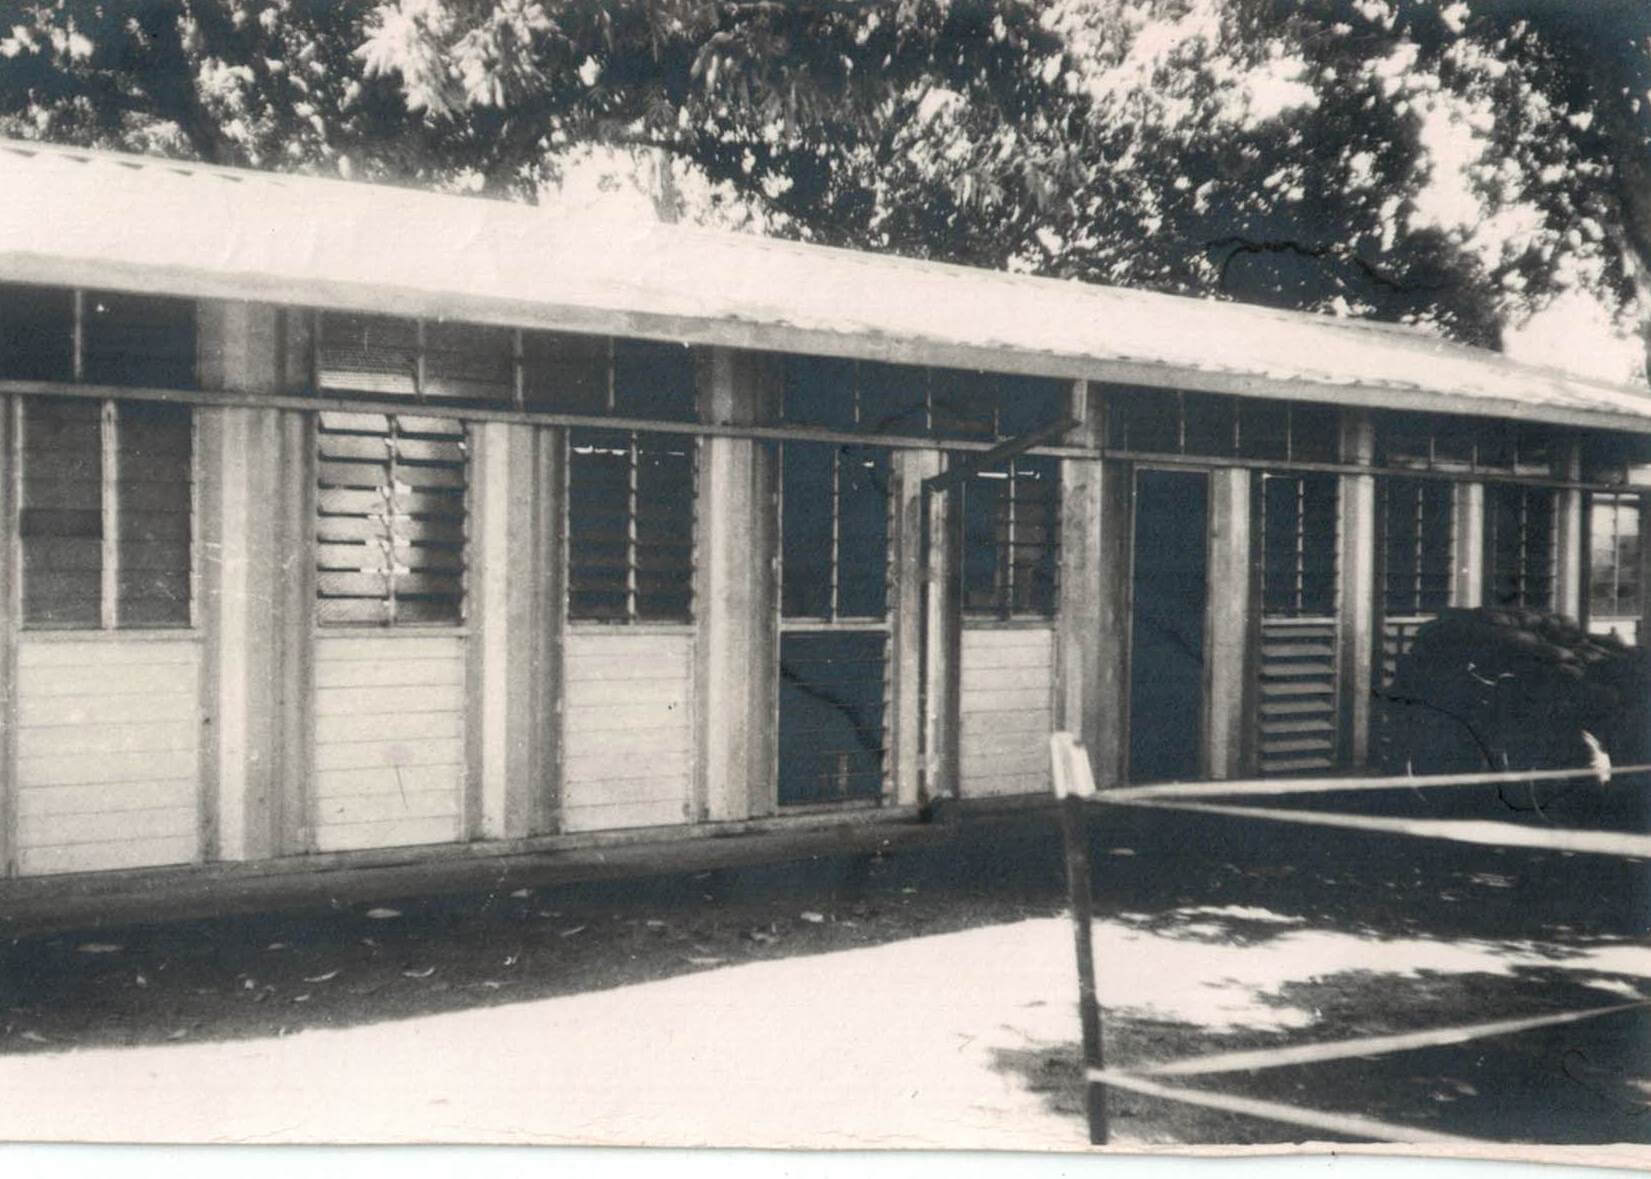 HQ building of 1 FD SQN GP circa 1969.